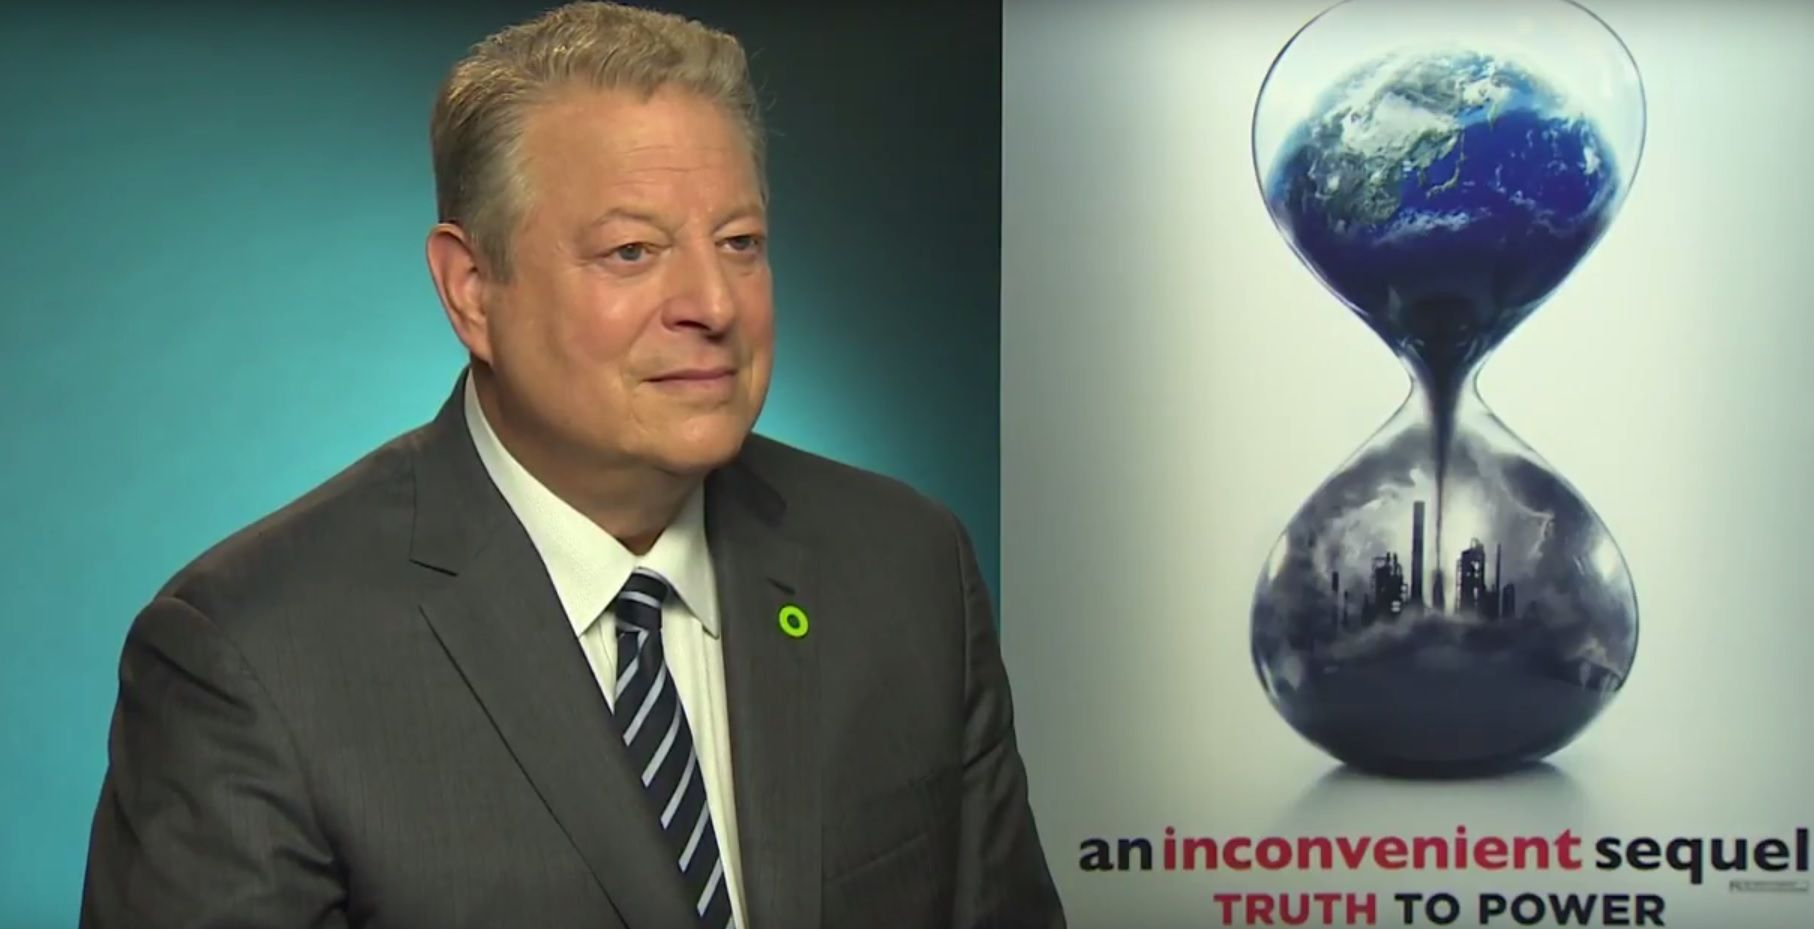 reflection on an inconvenient truth al gore Synopsis in 2007, america's ex-vice president al gore shook the world with his passionate plea to take climate change seriously, captured in his documentary 'an inconvenient truth.